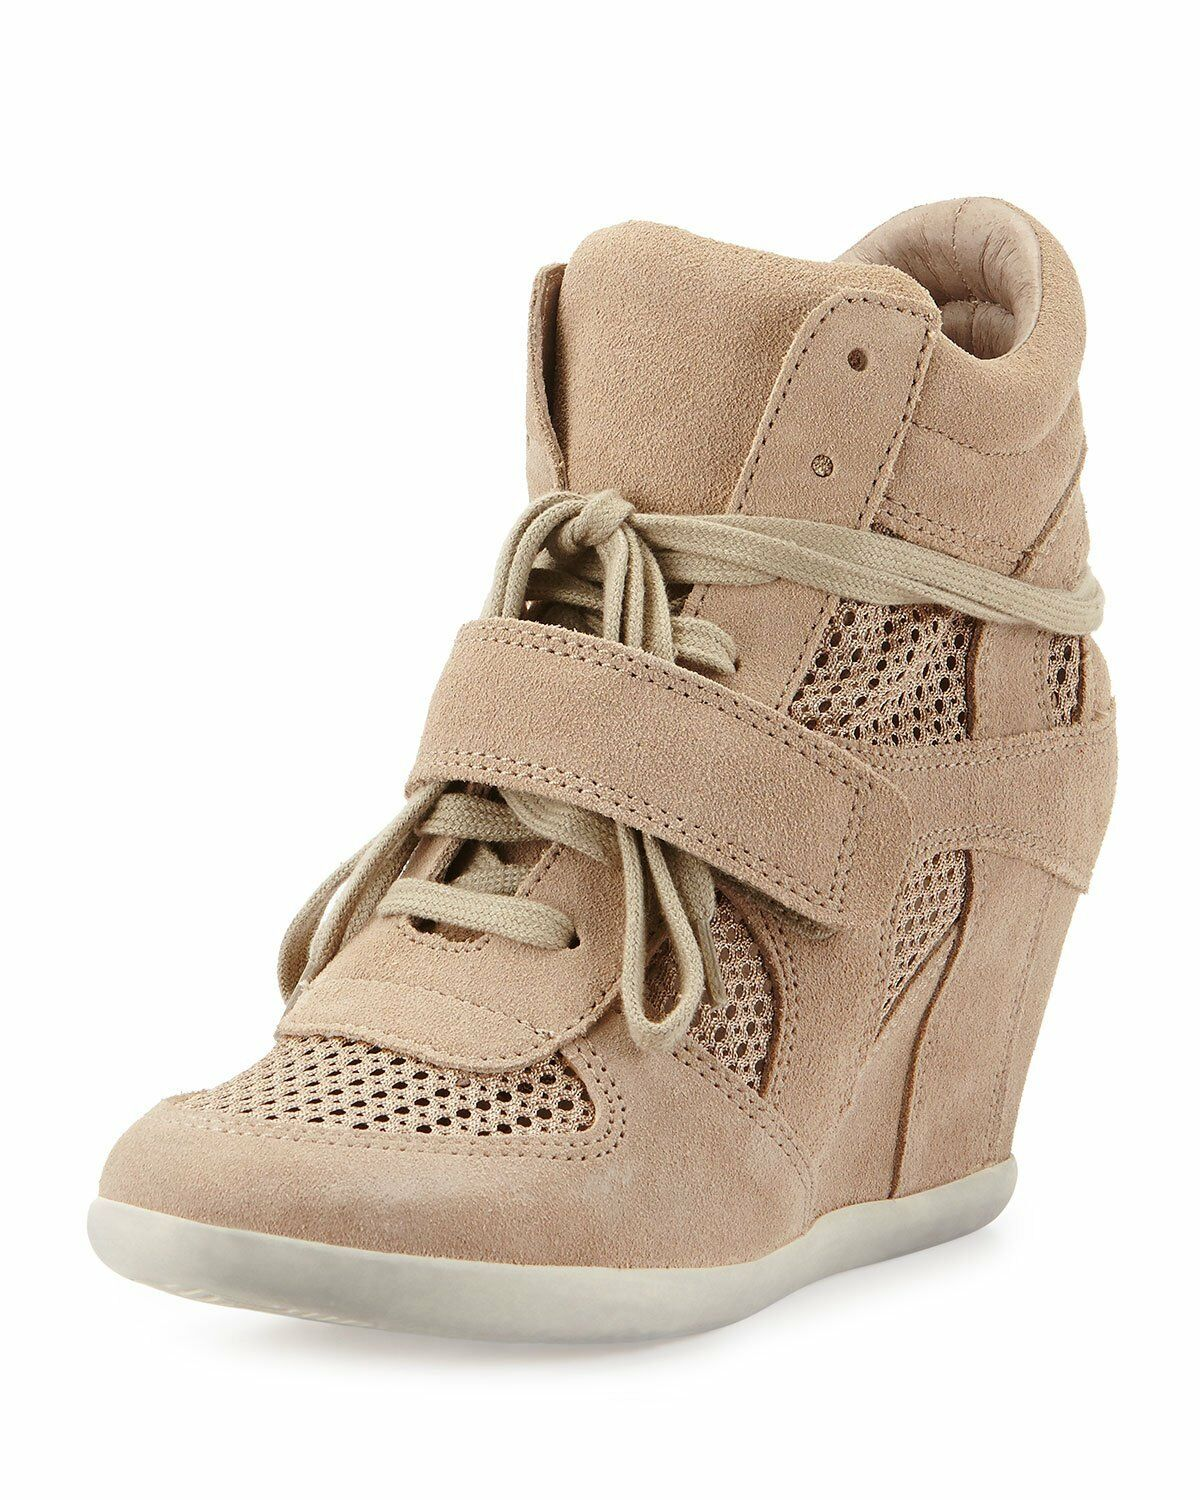 83baa080615a A By Ash Limited ASH Bowie Mesh Wedge Sneakers Size 40 US 10 Biscuit ...